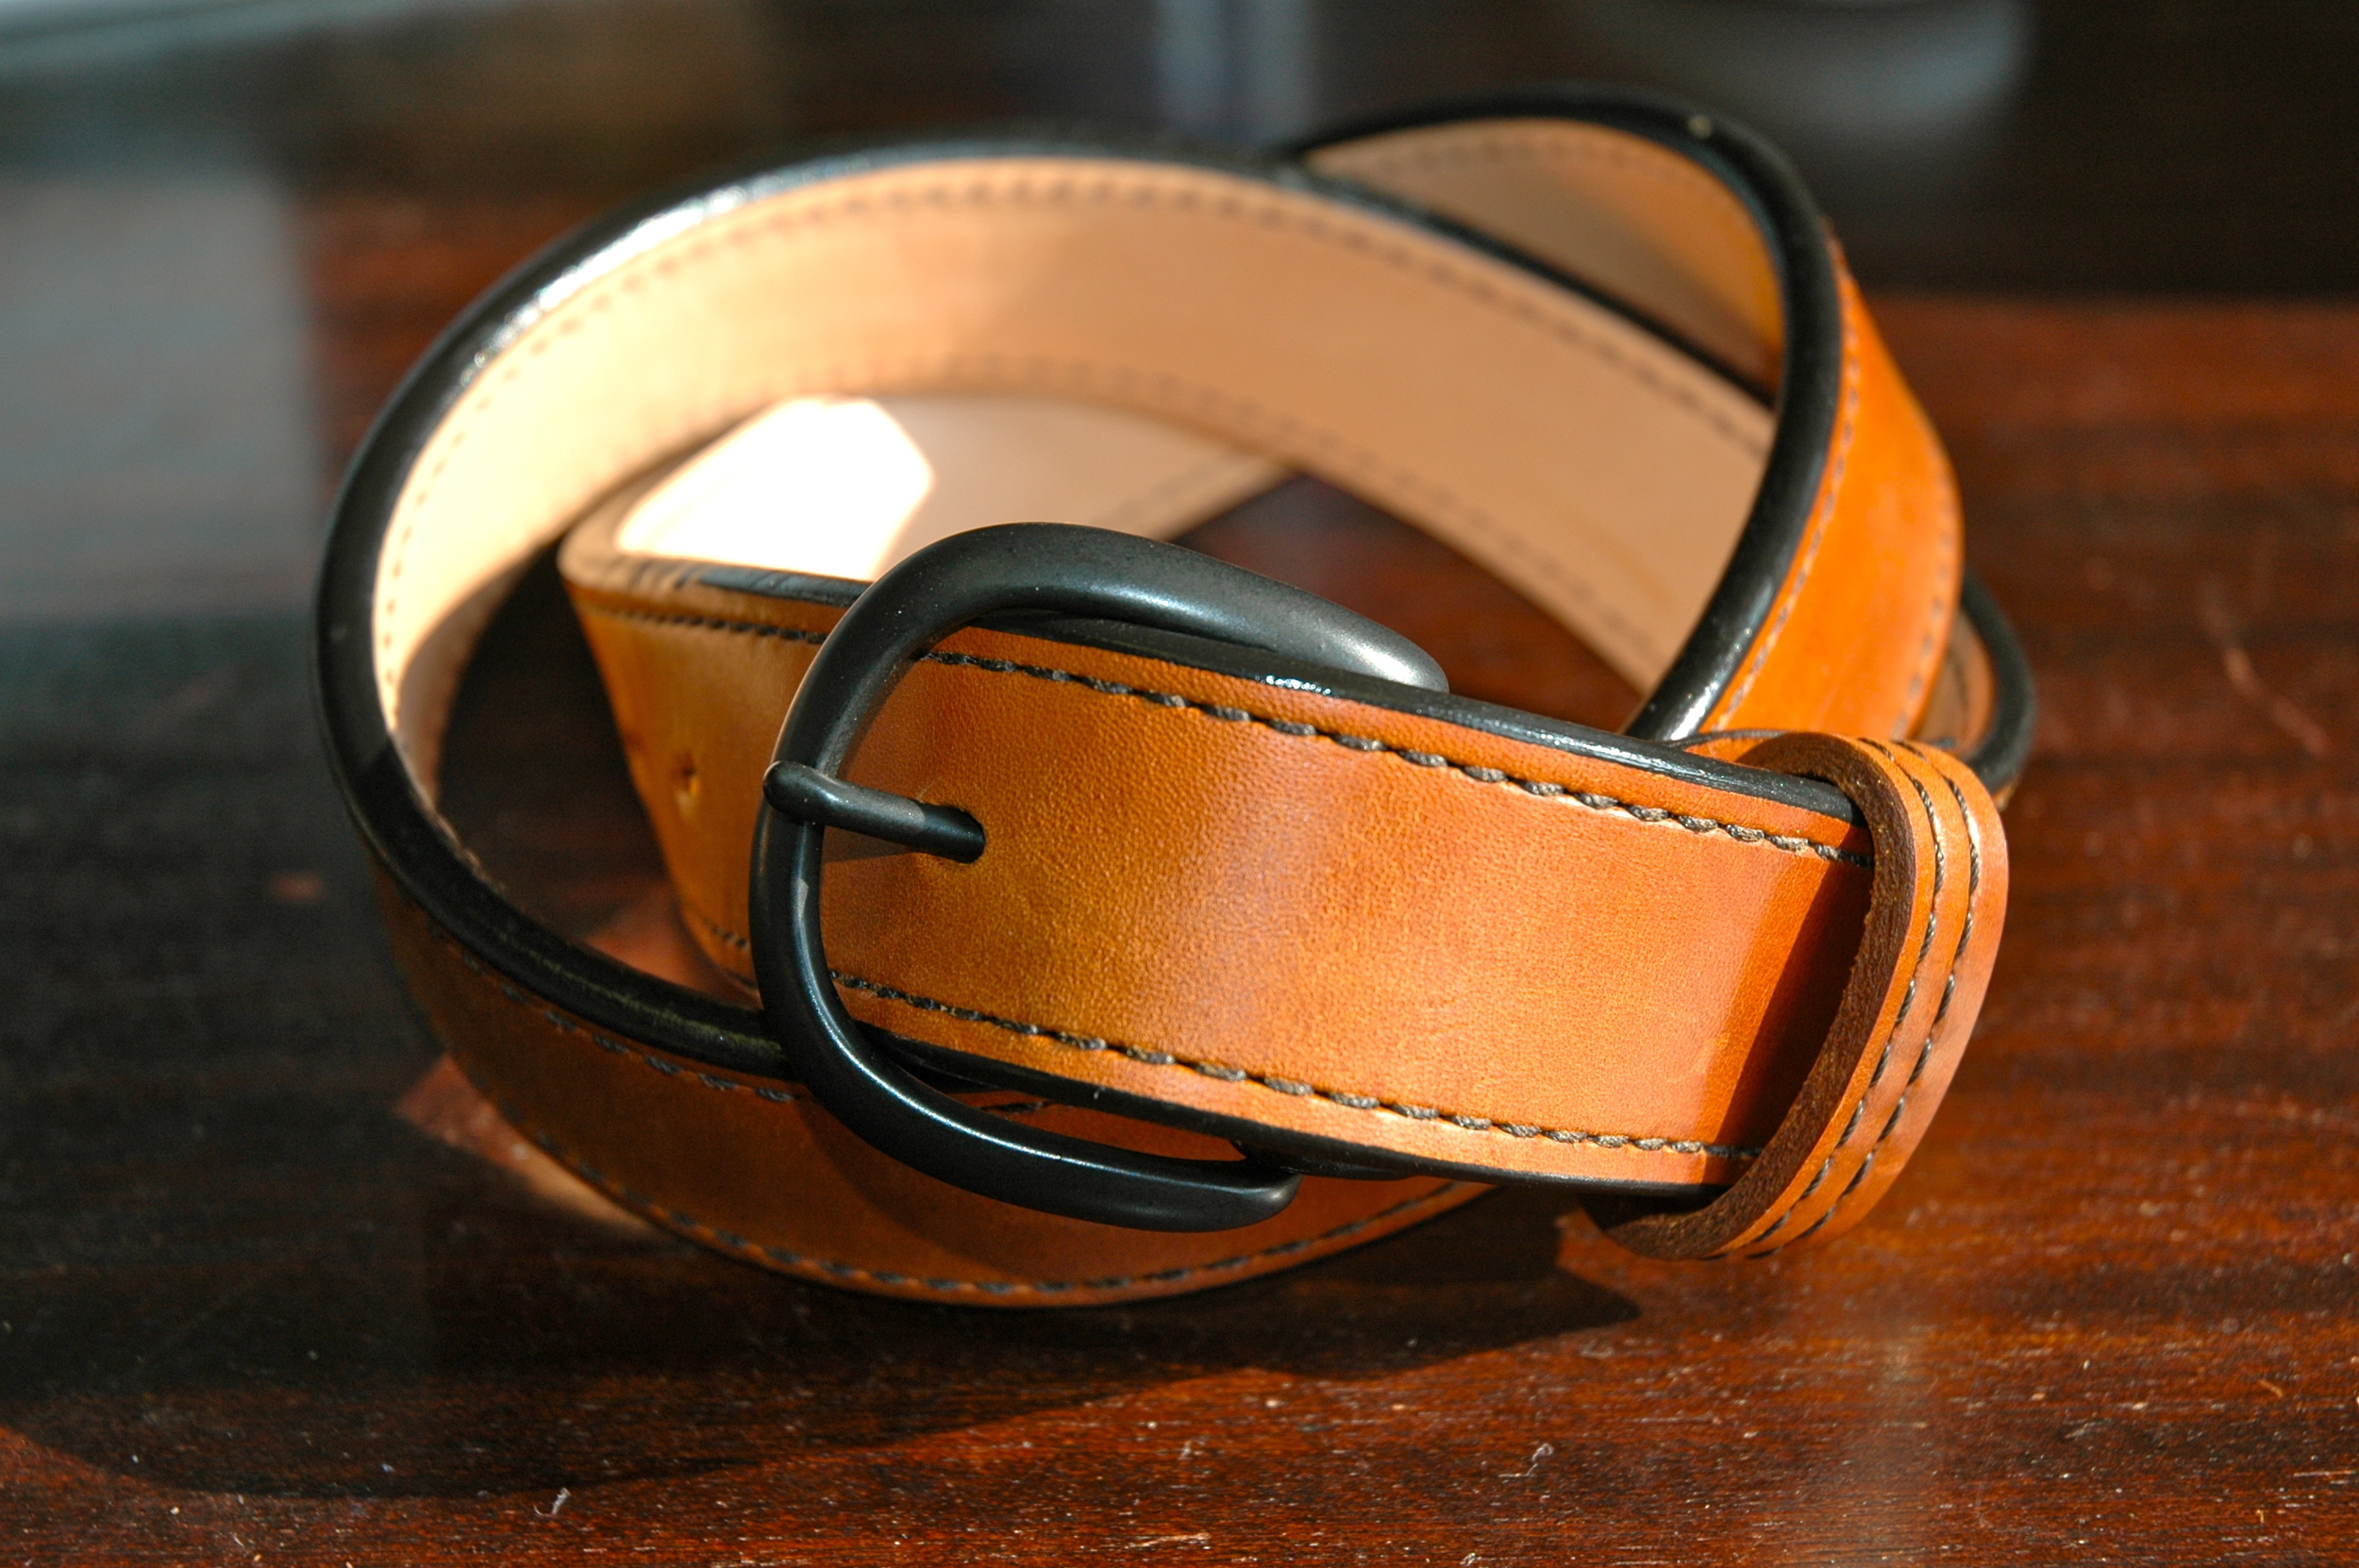 Tan Horsehide Belt with a Round Powder-Coated Black Buckle